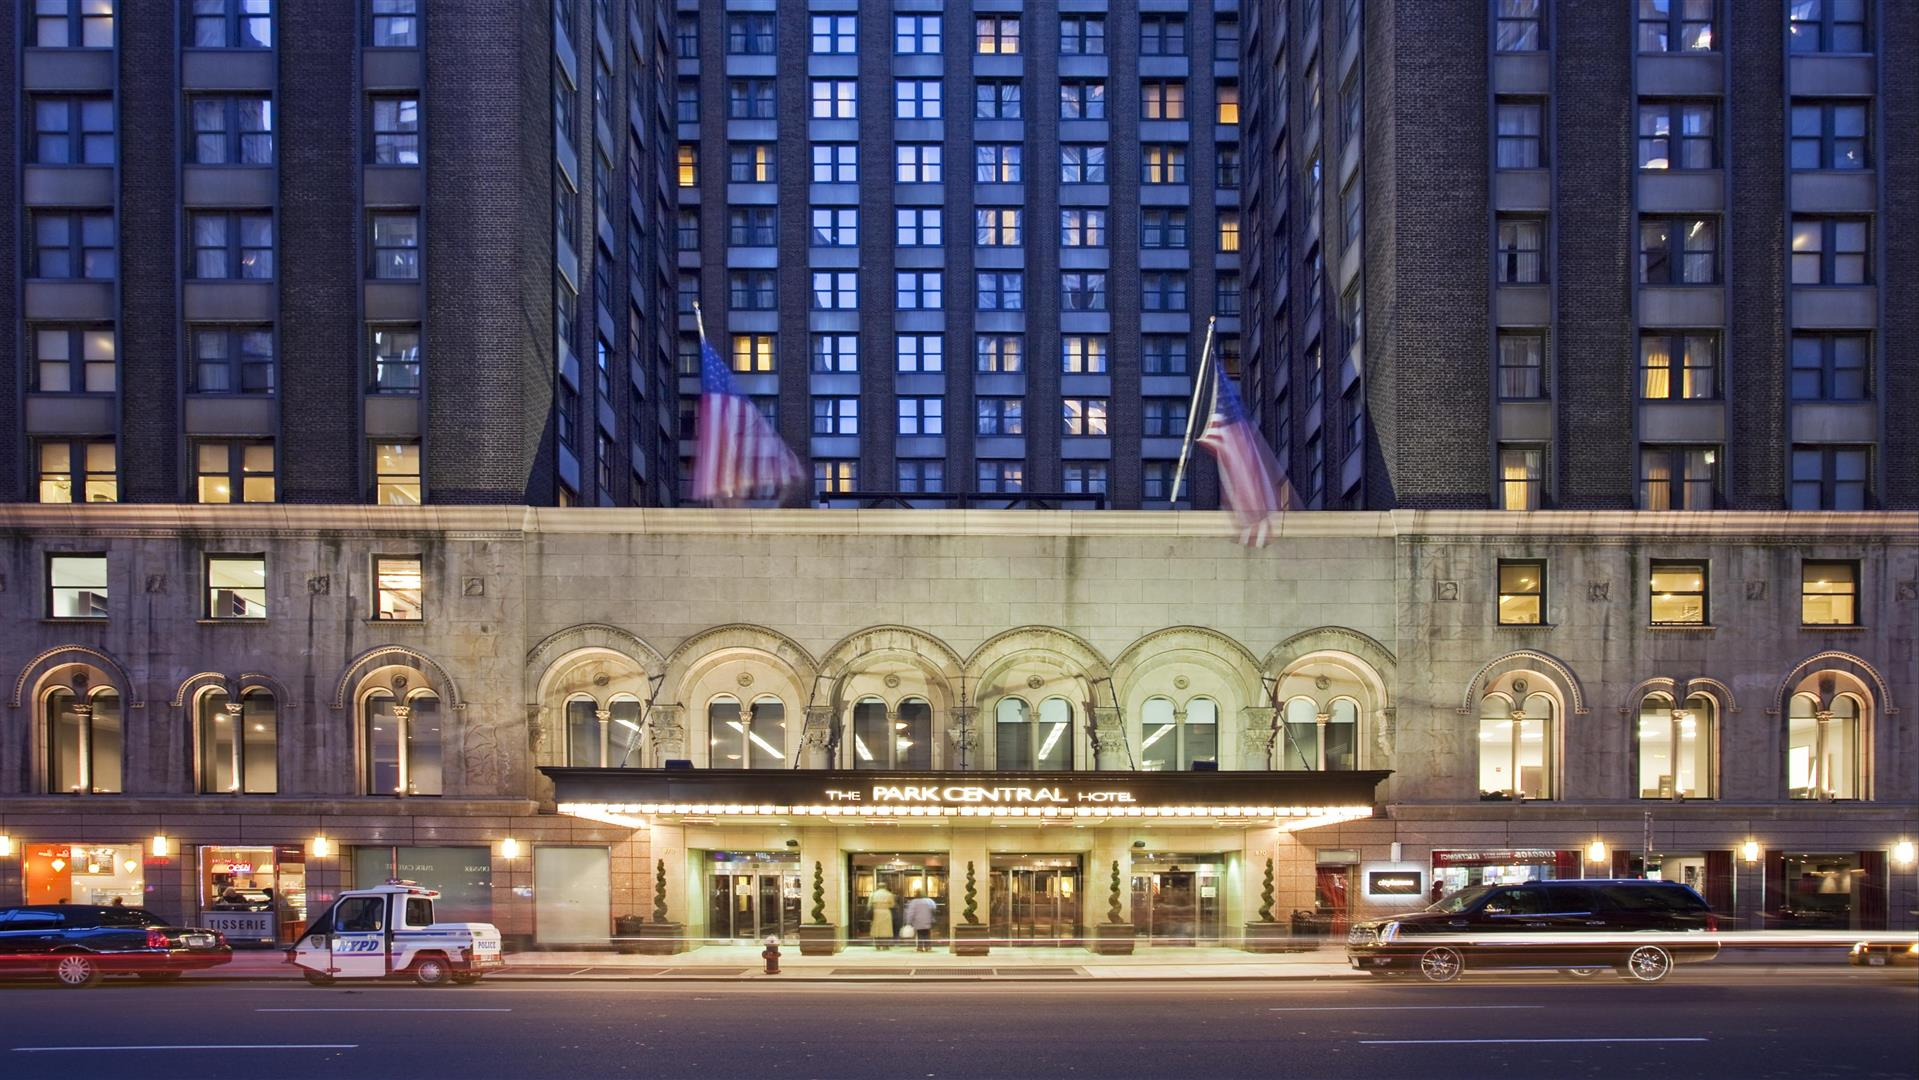 Venues promotions city guides for Hotels near central park new york